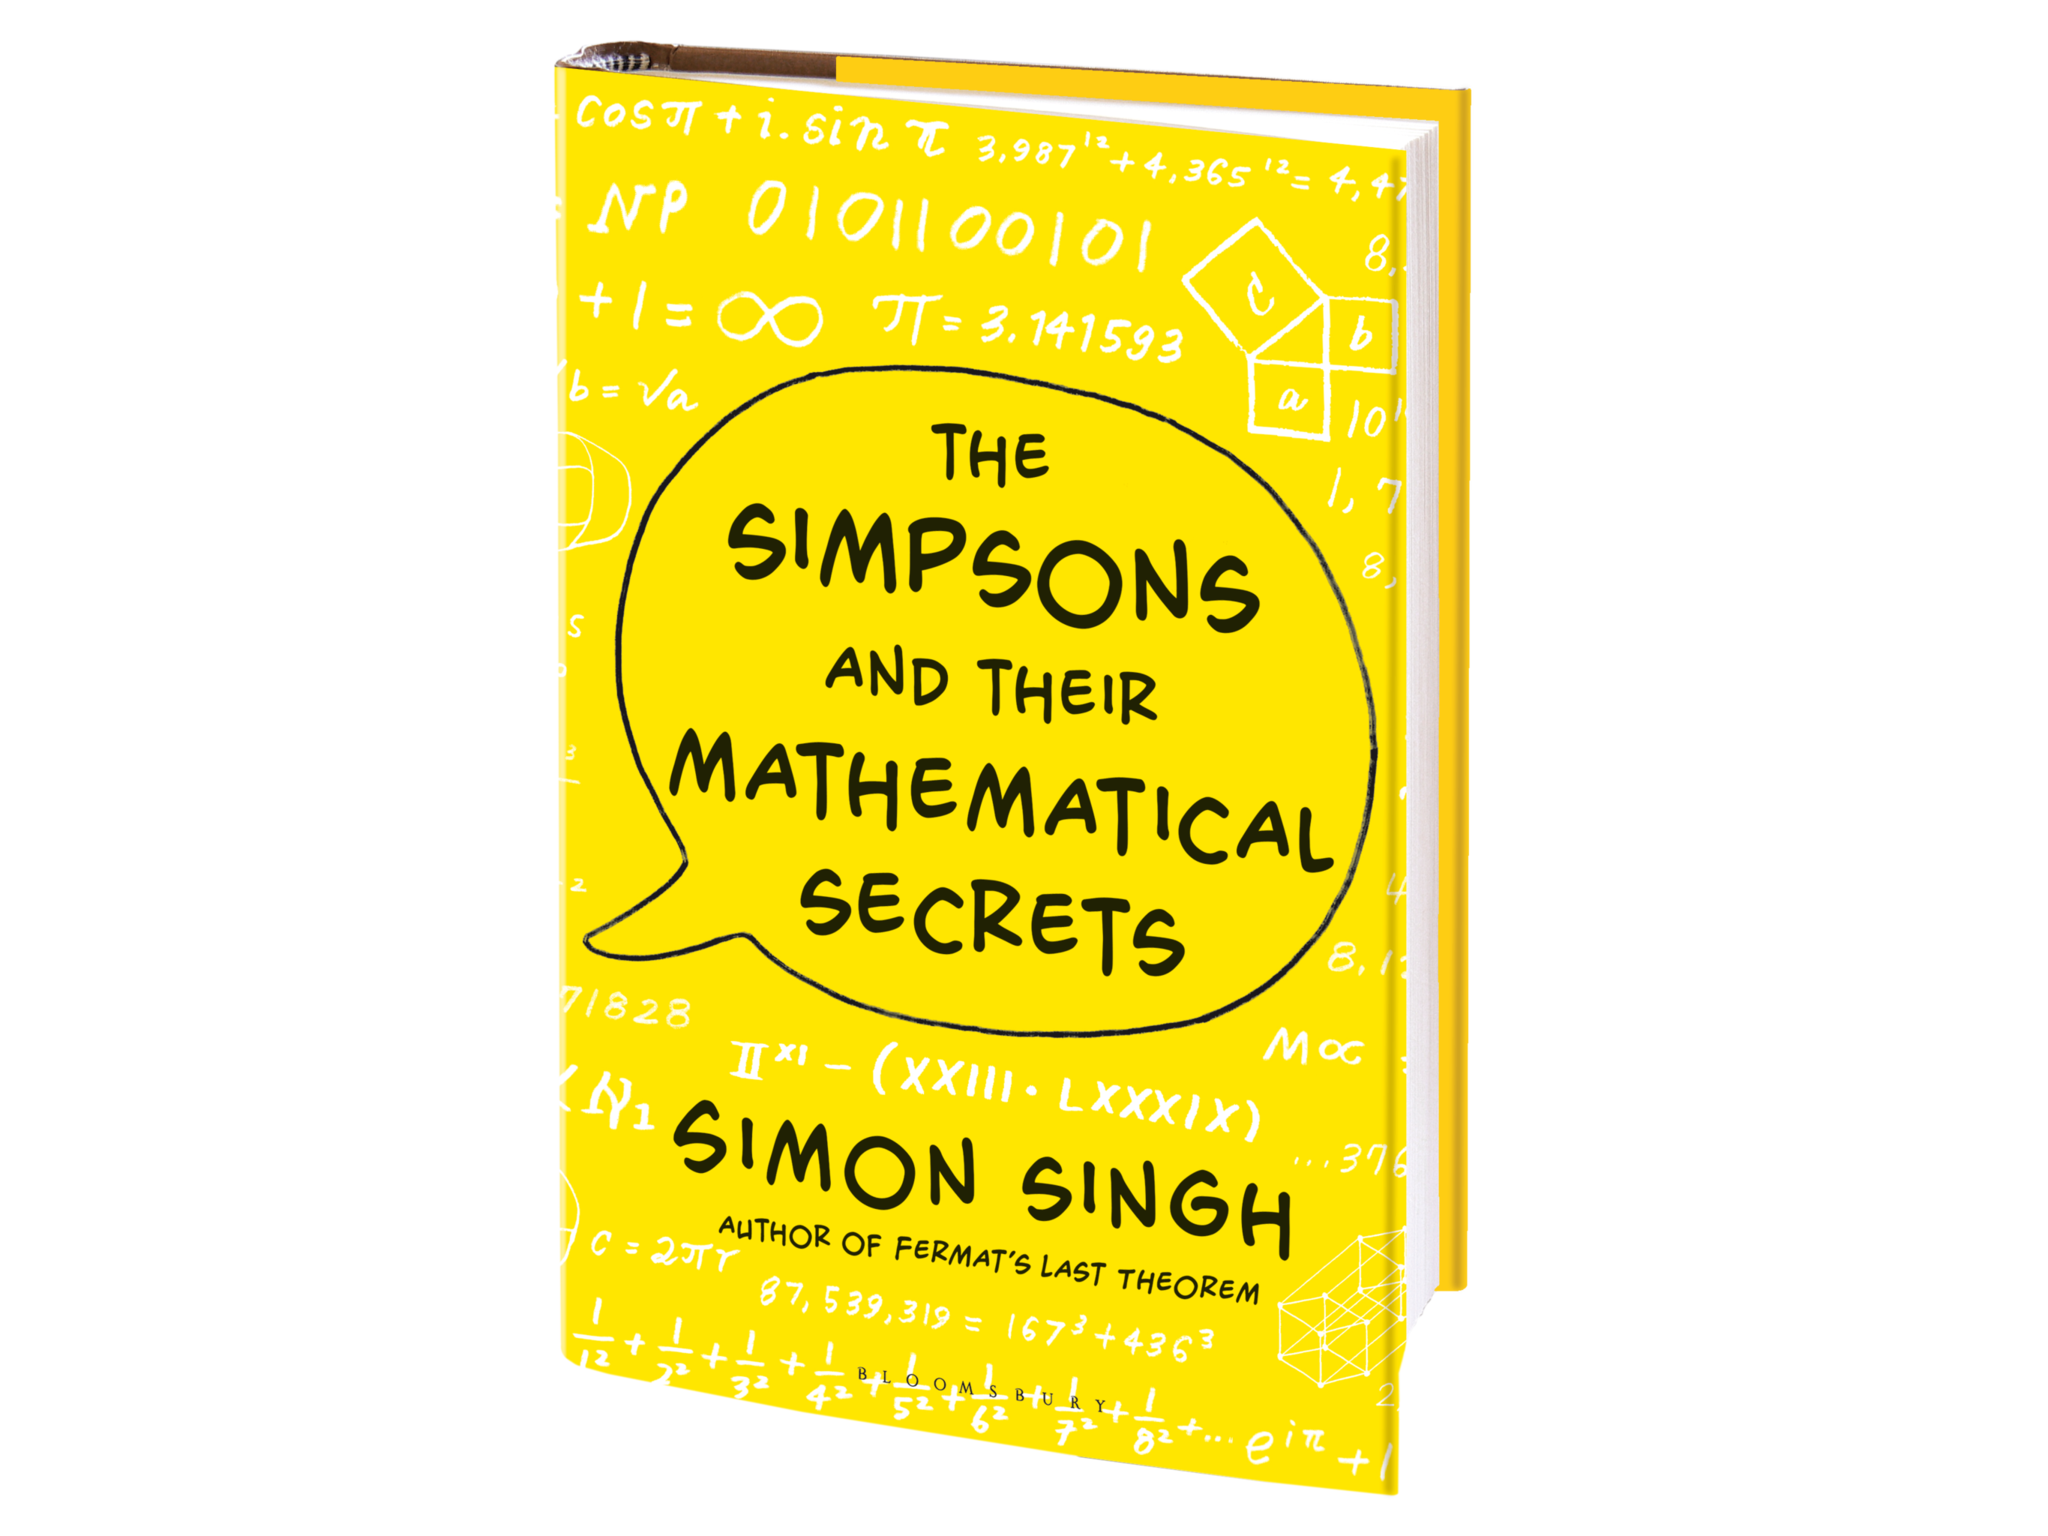 Signed copy of The Simpsons & Their Mathematical Secrets by Simon Singh (Hardback)